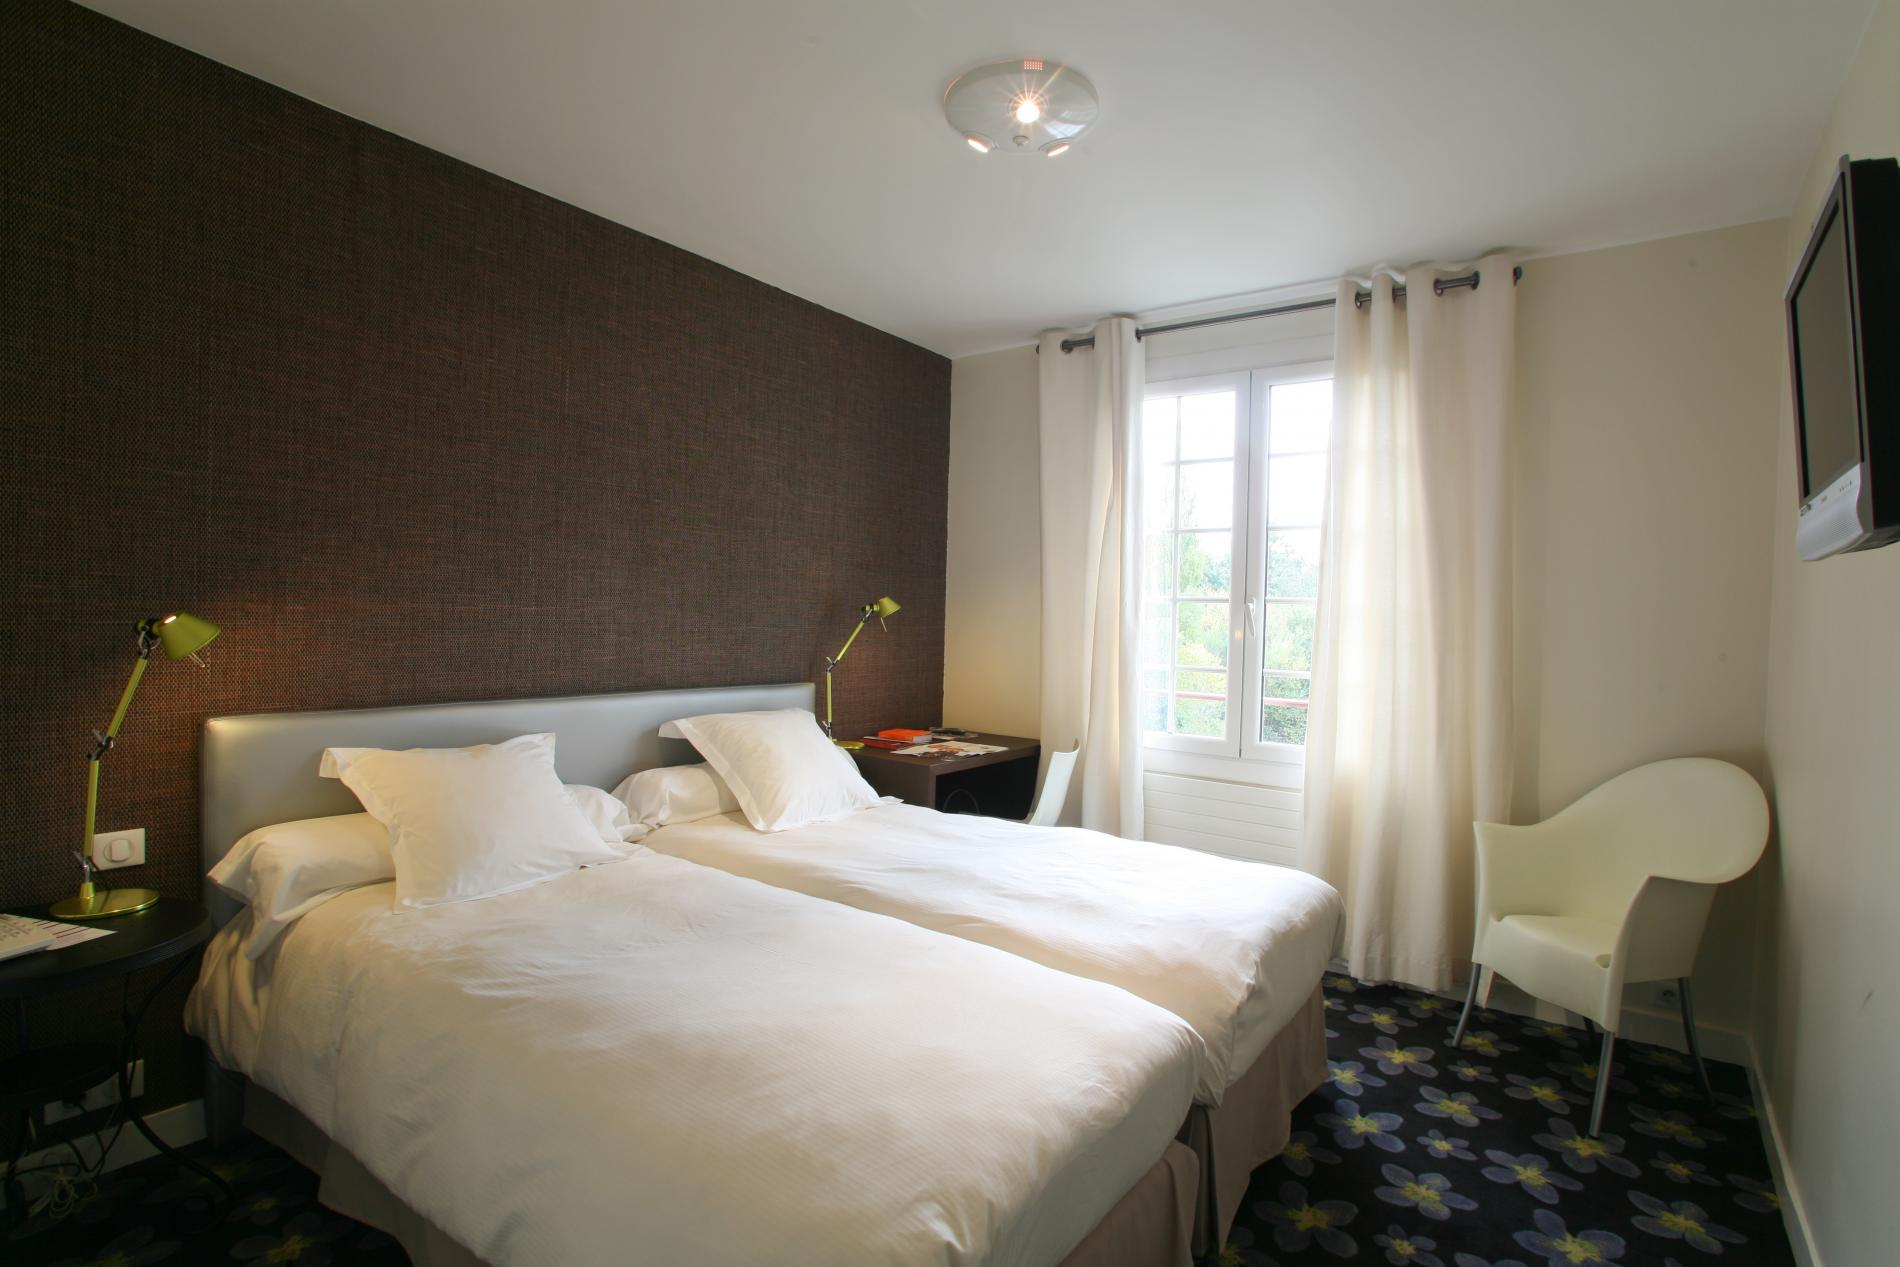 HOTEL DU MOULIN SINGLE ROOM